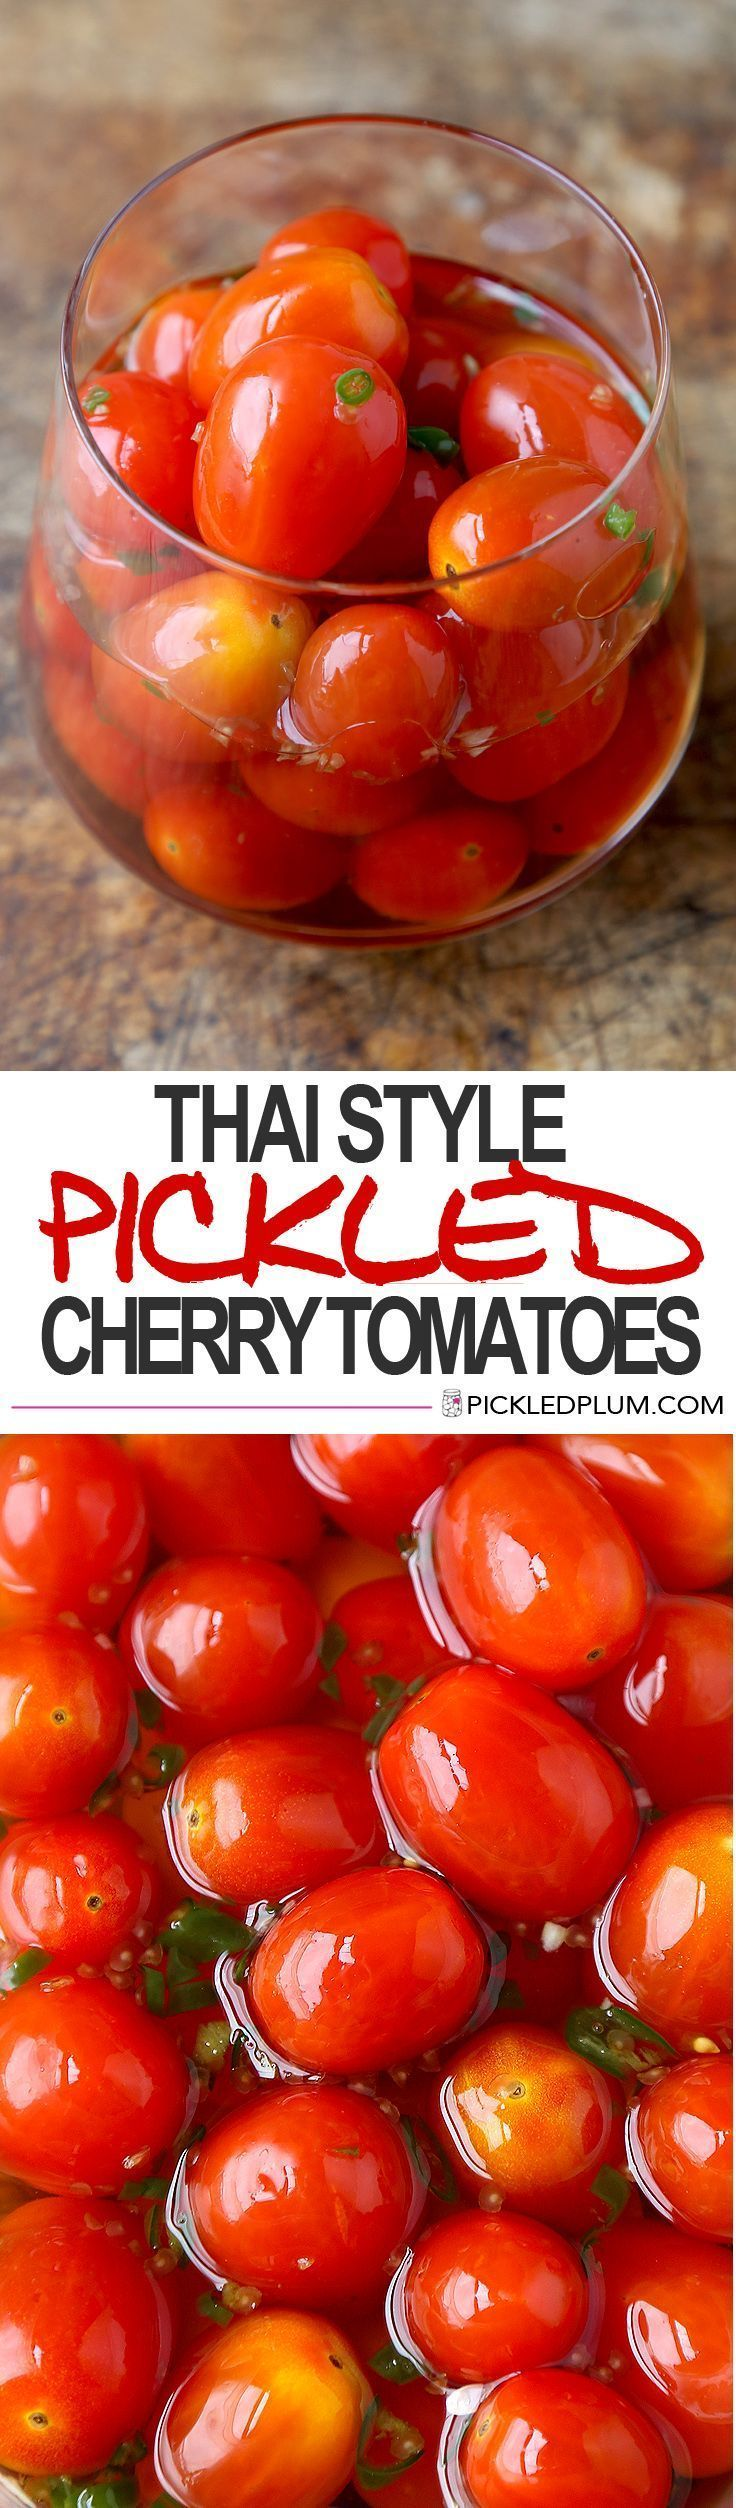 Thai Style Pickled Cherry Tomatoes. Spicy! Gluten-Free! Awesomely healthy snack idea! @pickledplumfood